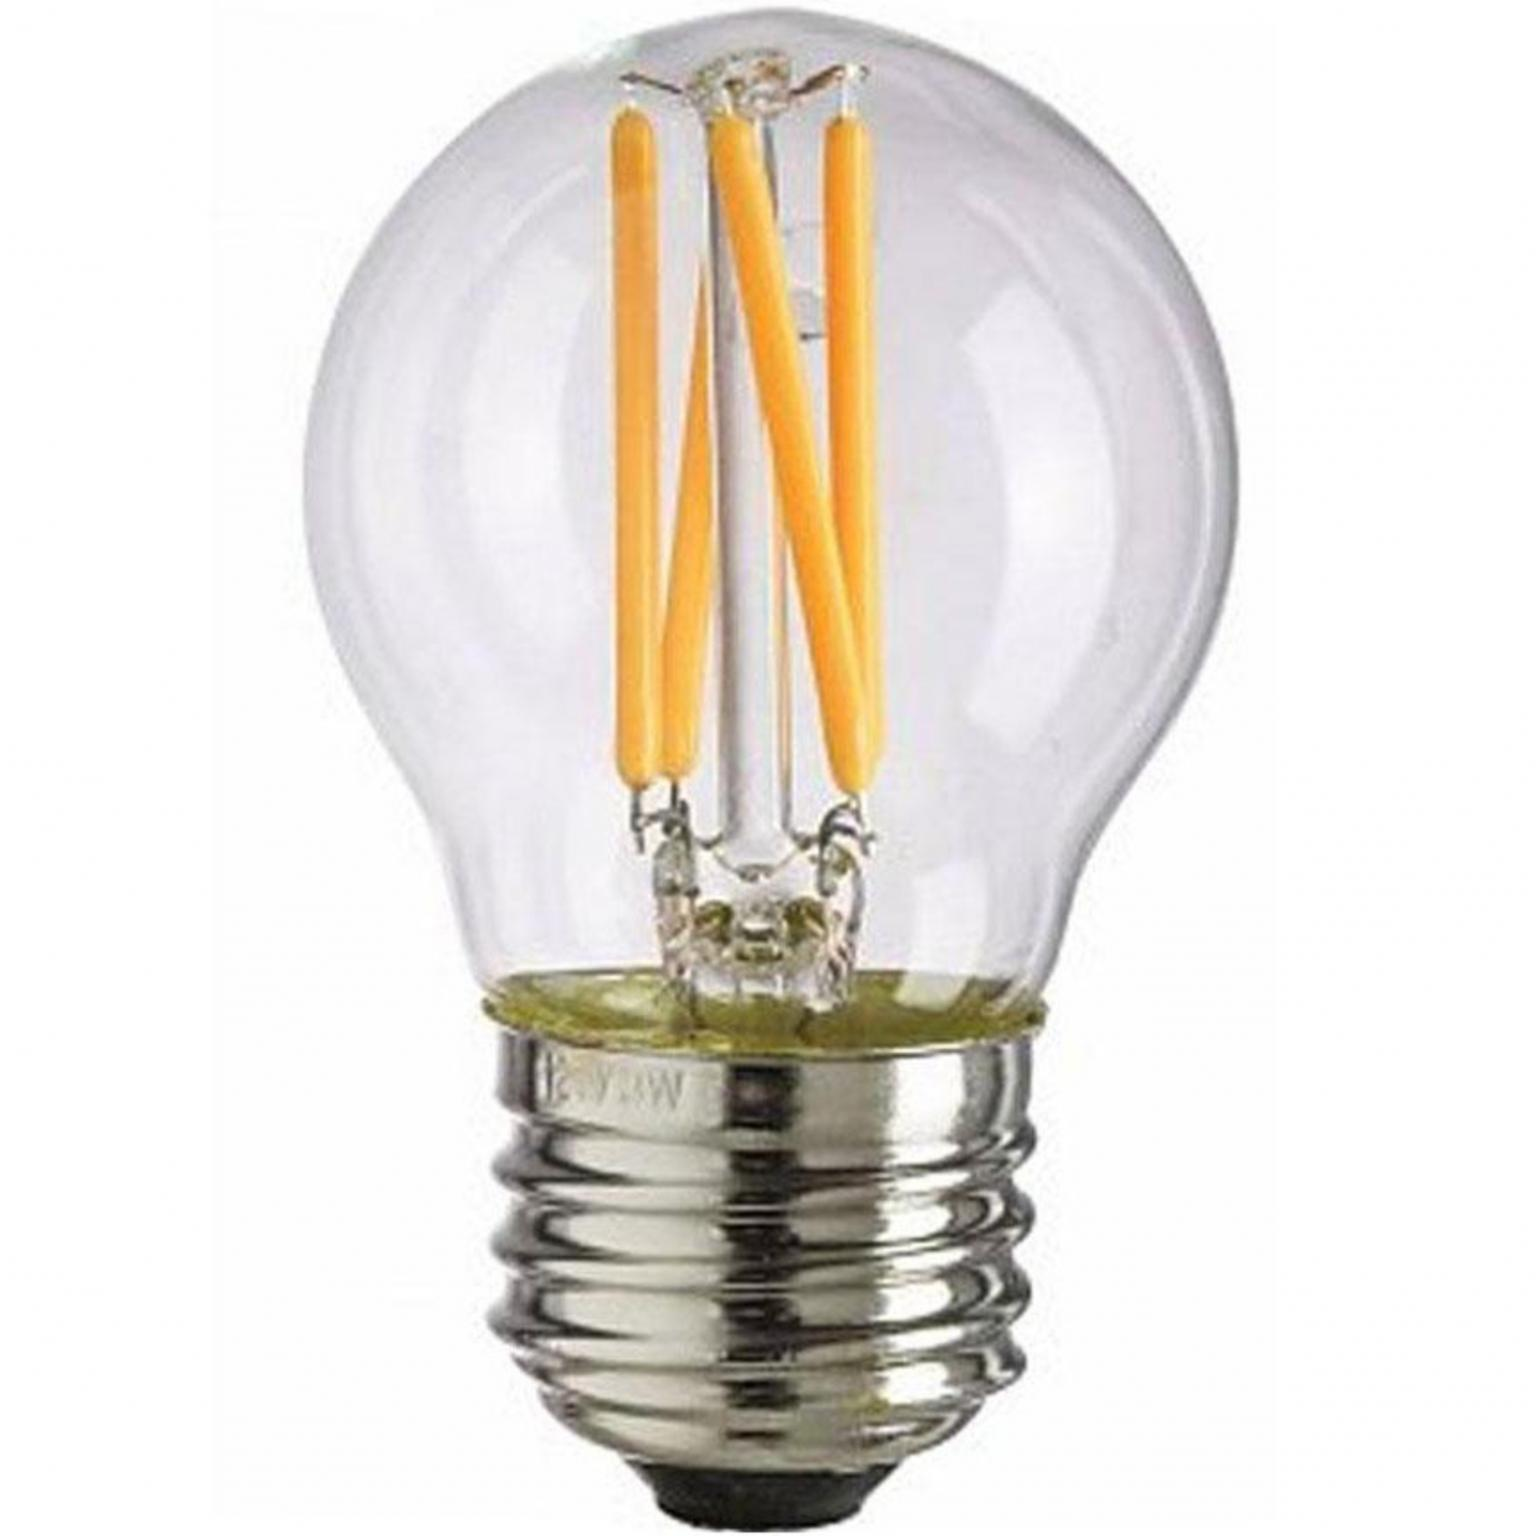 Filament Led Lamp - 470 lumen